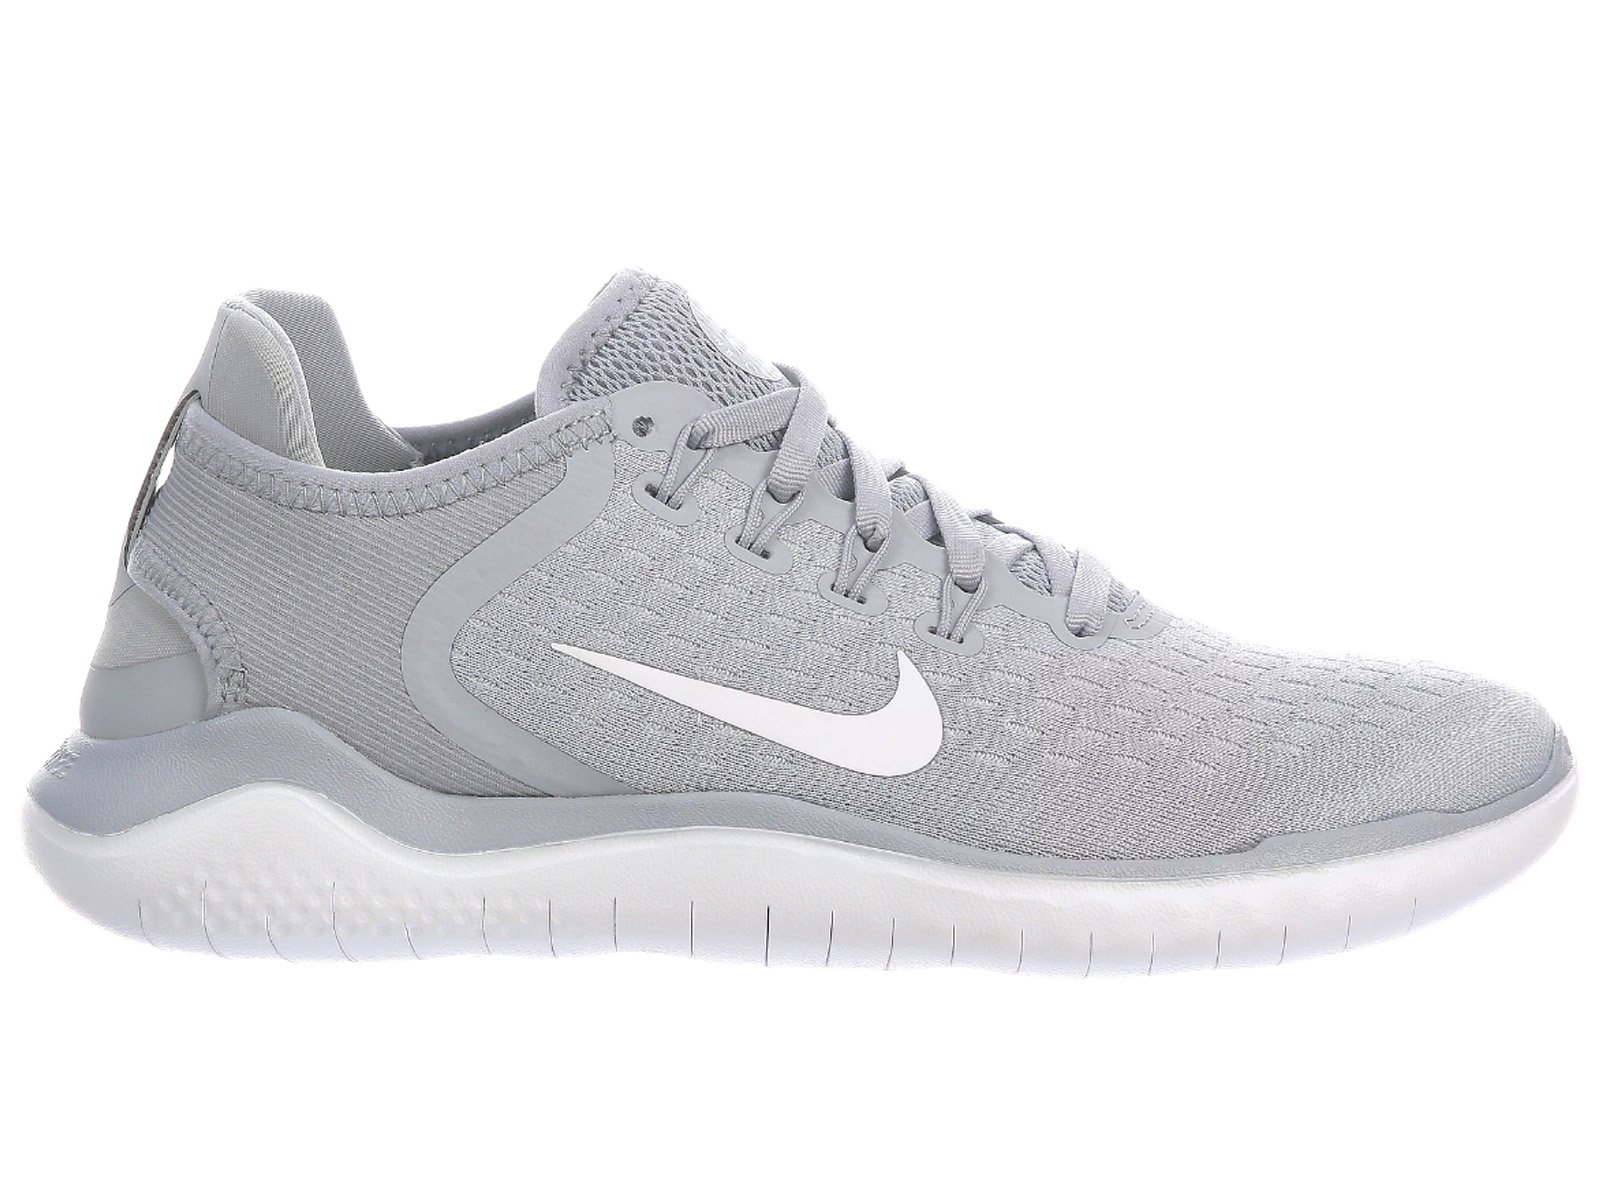 NIKE Women's Free RN 2018 Wolf Grey/White-White-Volt Running Shoes (8 B US) by NIKE (Image #1)